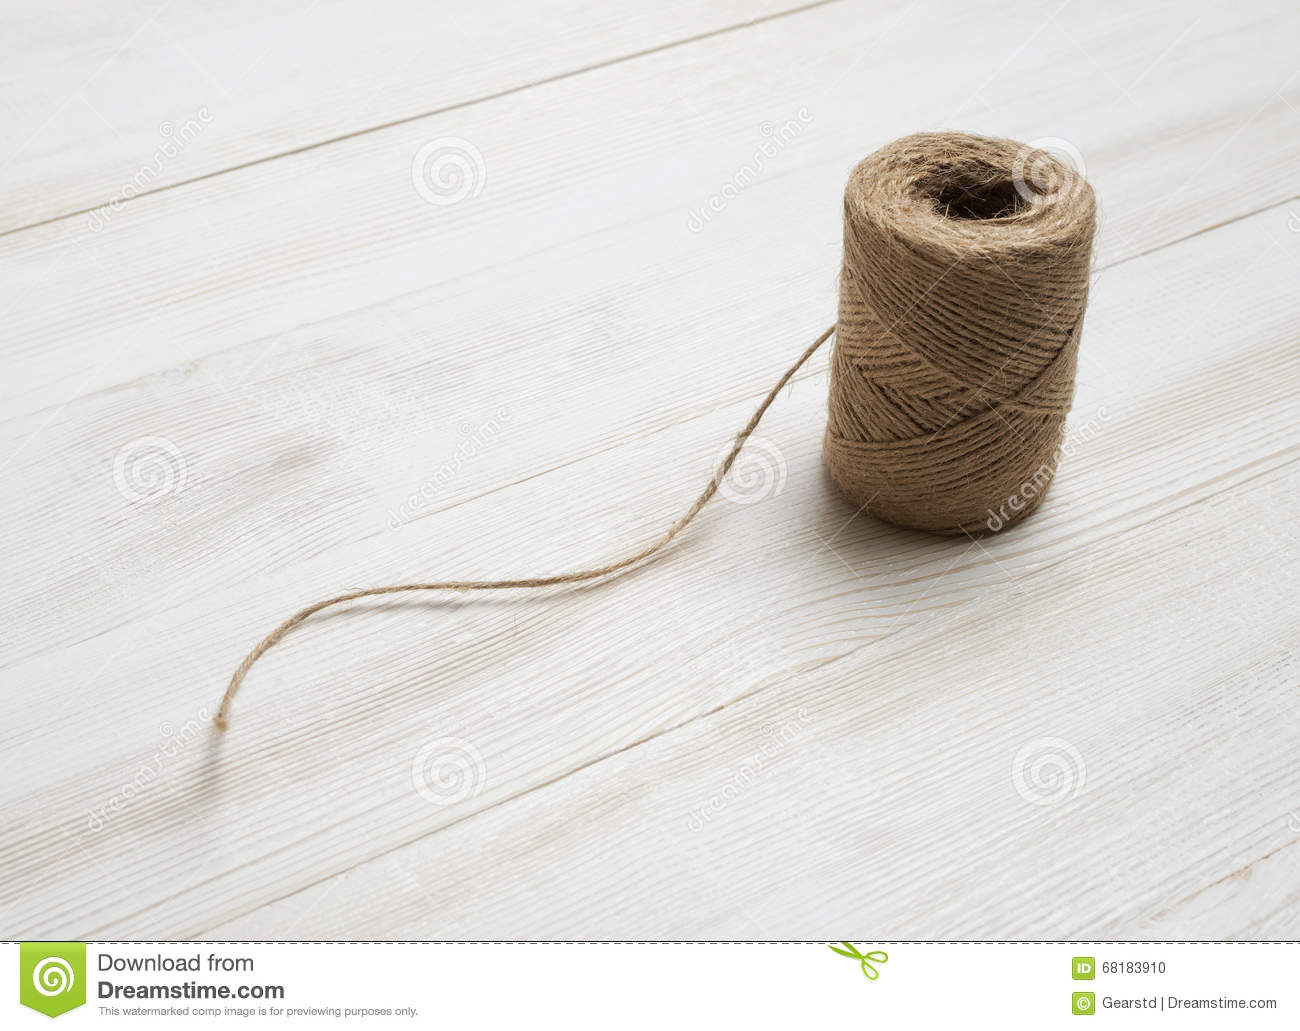 spool of wool thread on a white wooden background top view desktop